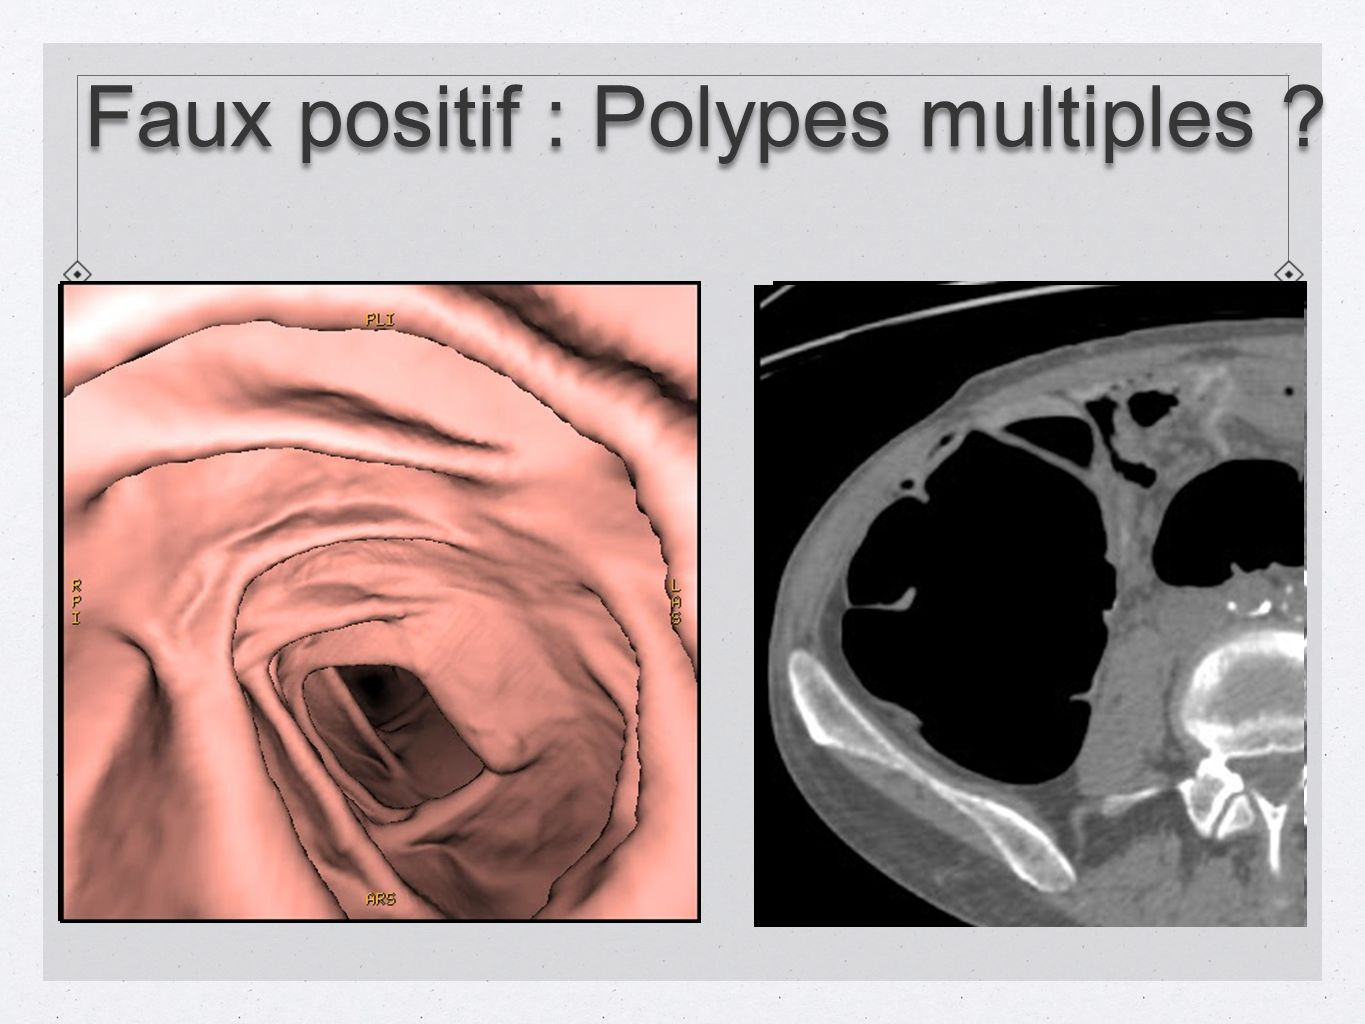 Faux positif : Polypes multiples ?